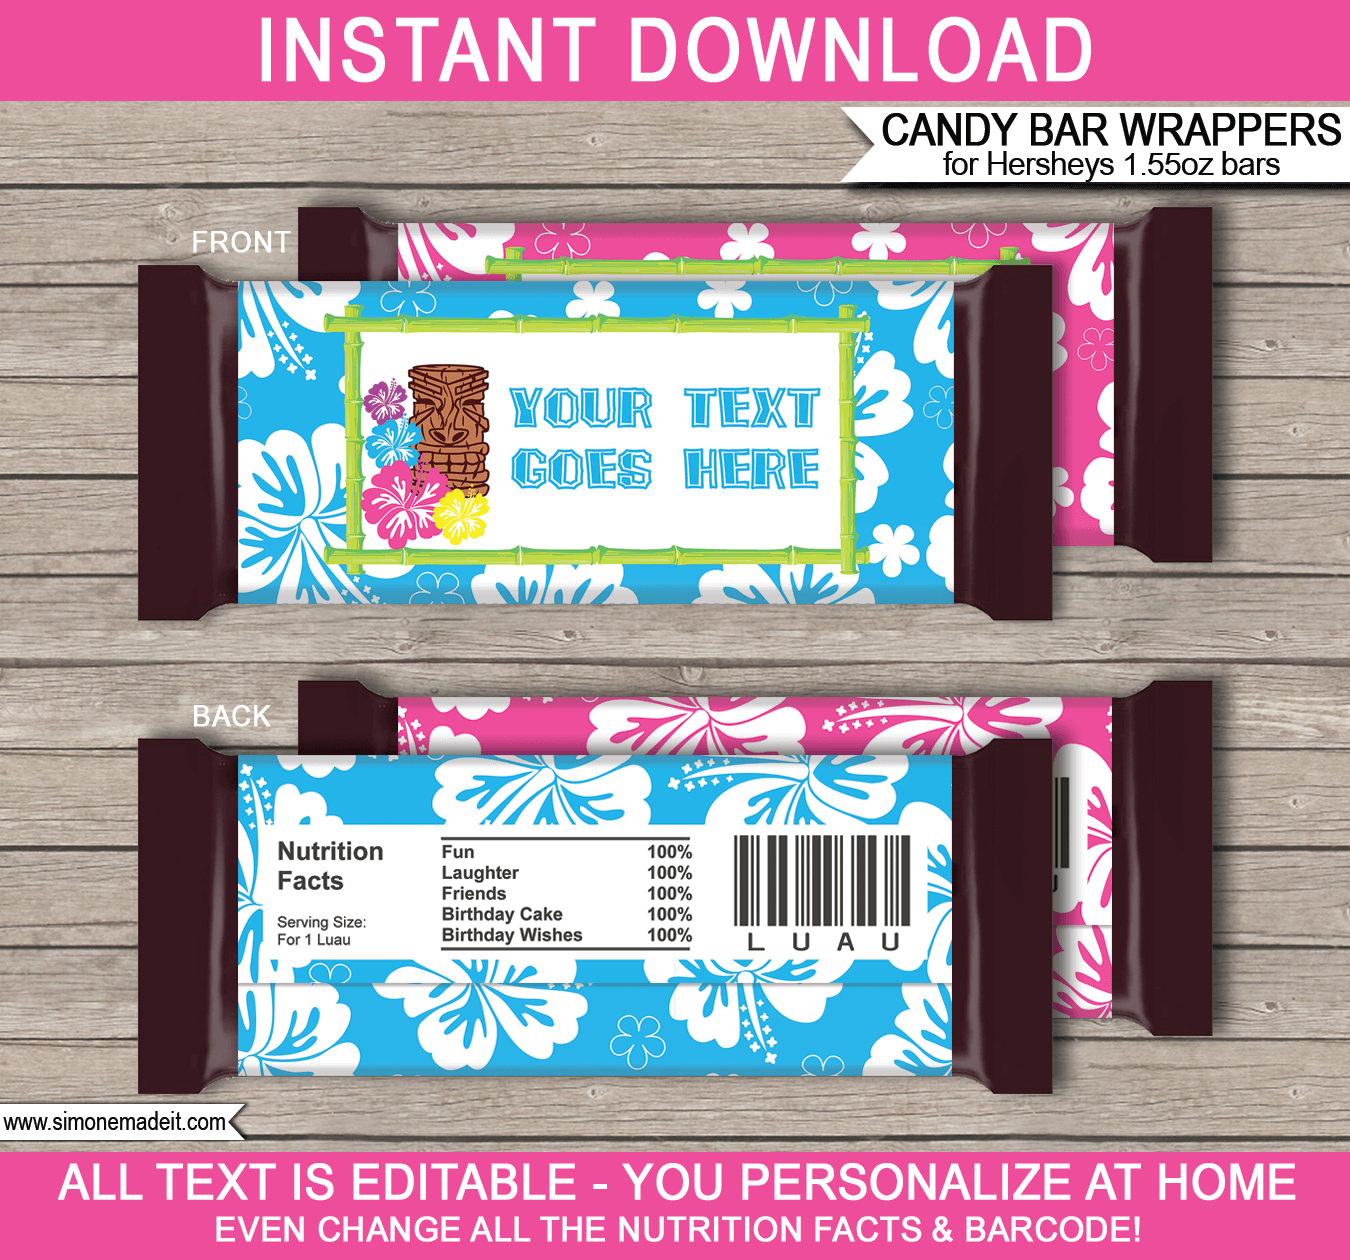 Luau Hershey Candy Bar Wrappers | Personalized Candy Bars - Free Printable Chocolate Wrappers